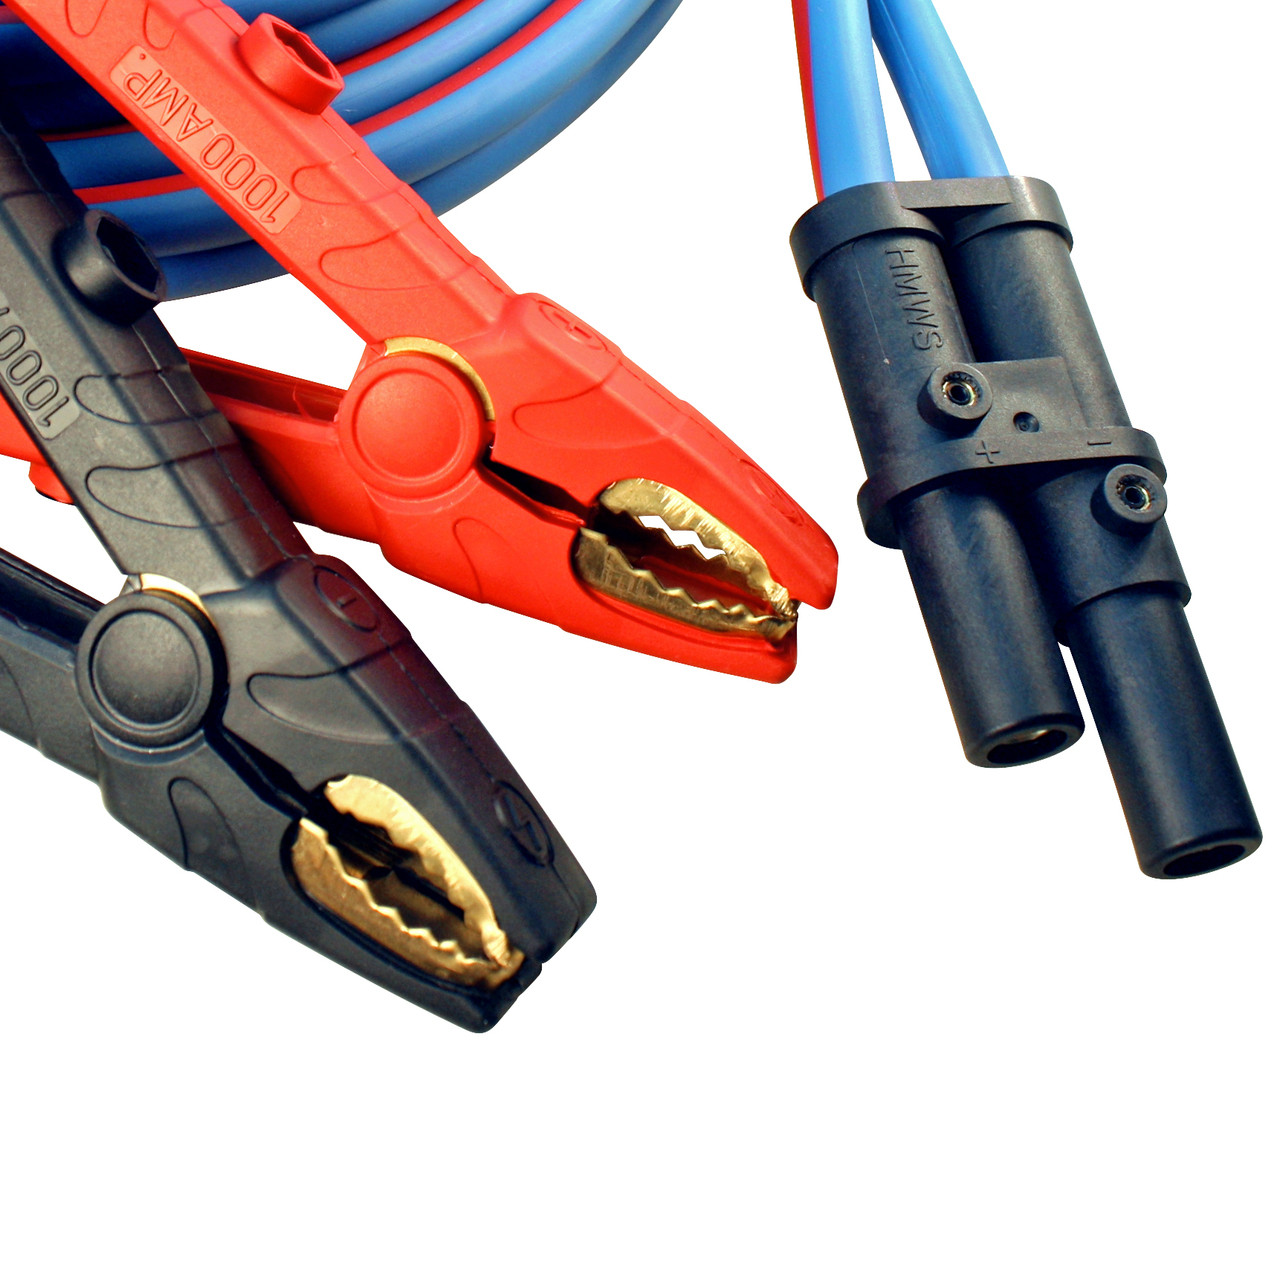 Polar Wire makes the best jump start cables available anywhere! 1/0 gauge, 30 foot heavy duty start cable with J-1283 plug connector